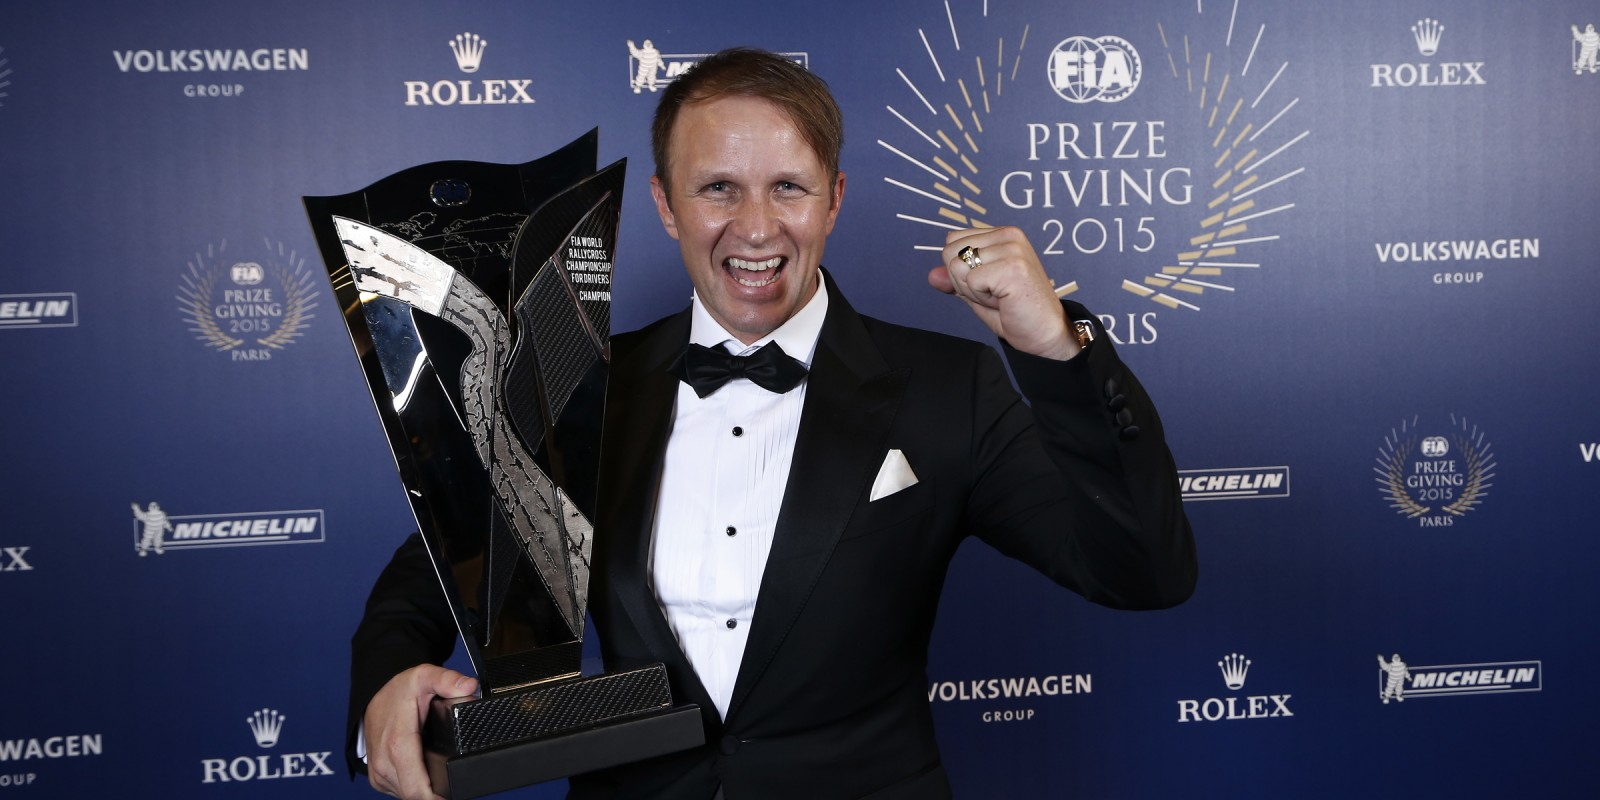 Petter Solberg collecting the 2015 FIA World Rallycross Drivers Championship Trophy at the 2015 FIA Awards Gala in Paris